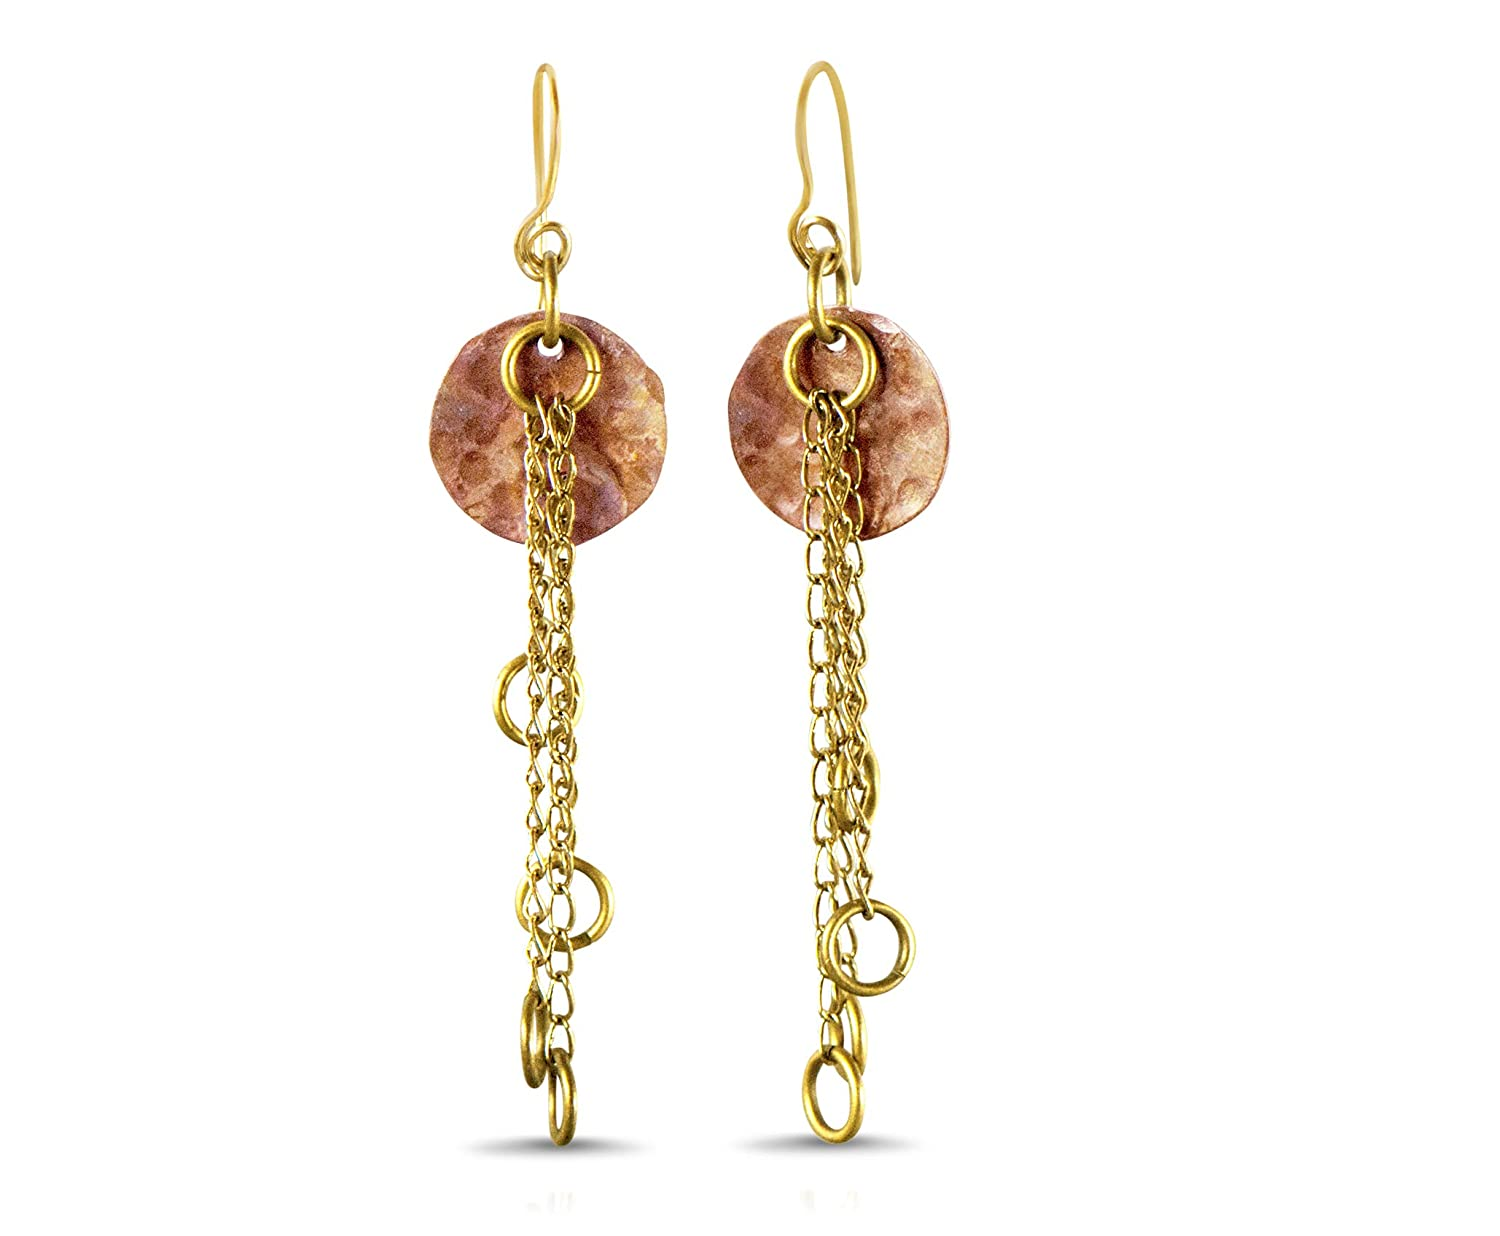 Charlene Hall Designs Moon Earrings with Antique Brass dangles